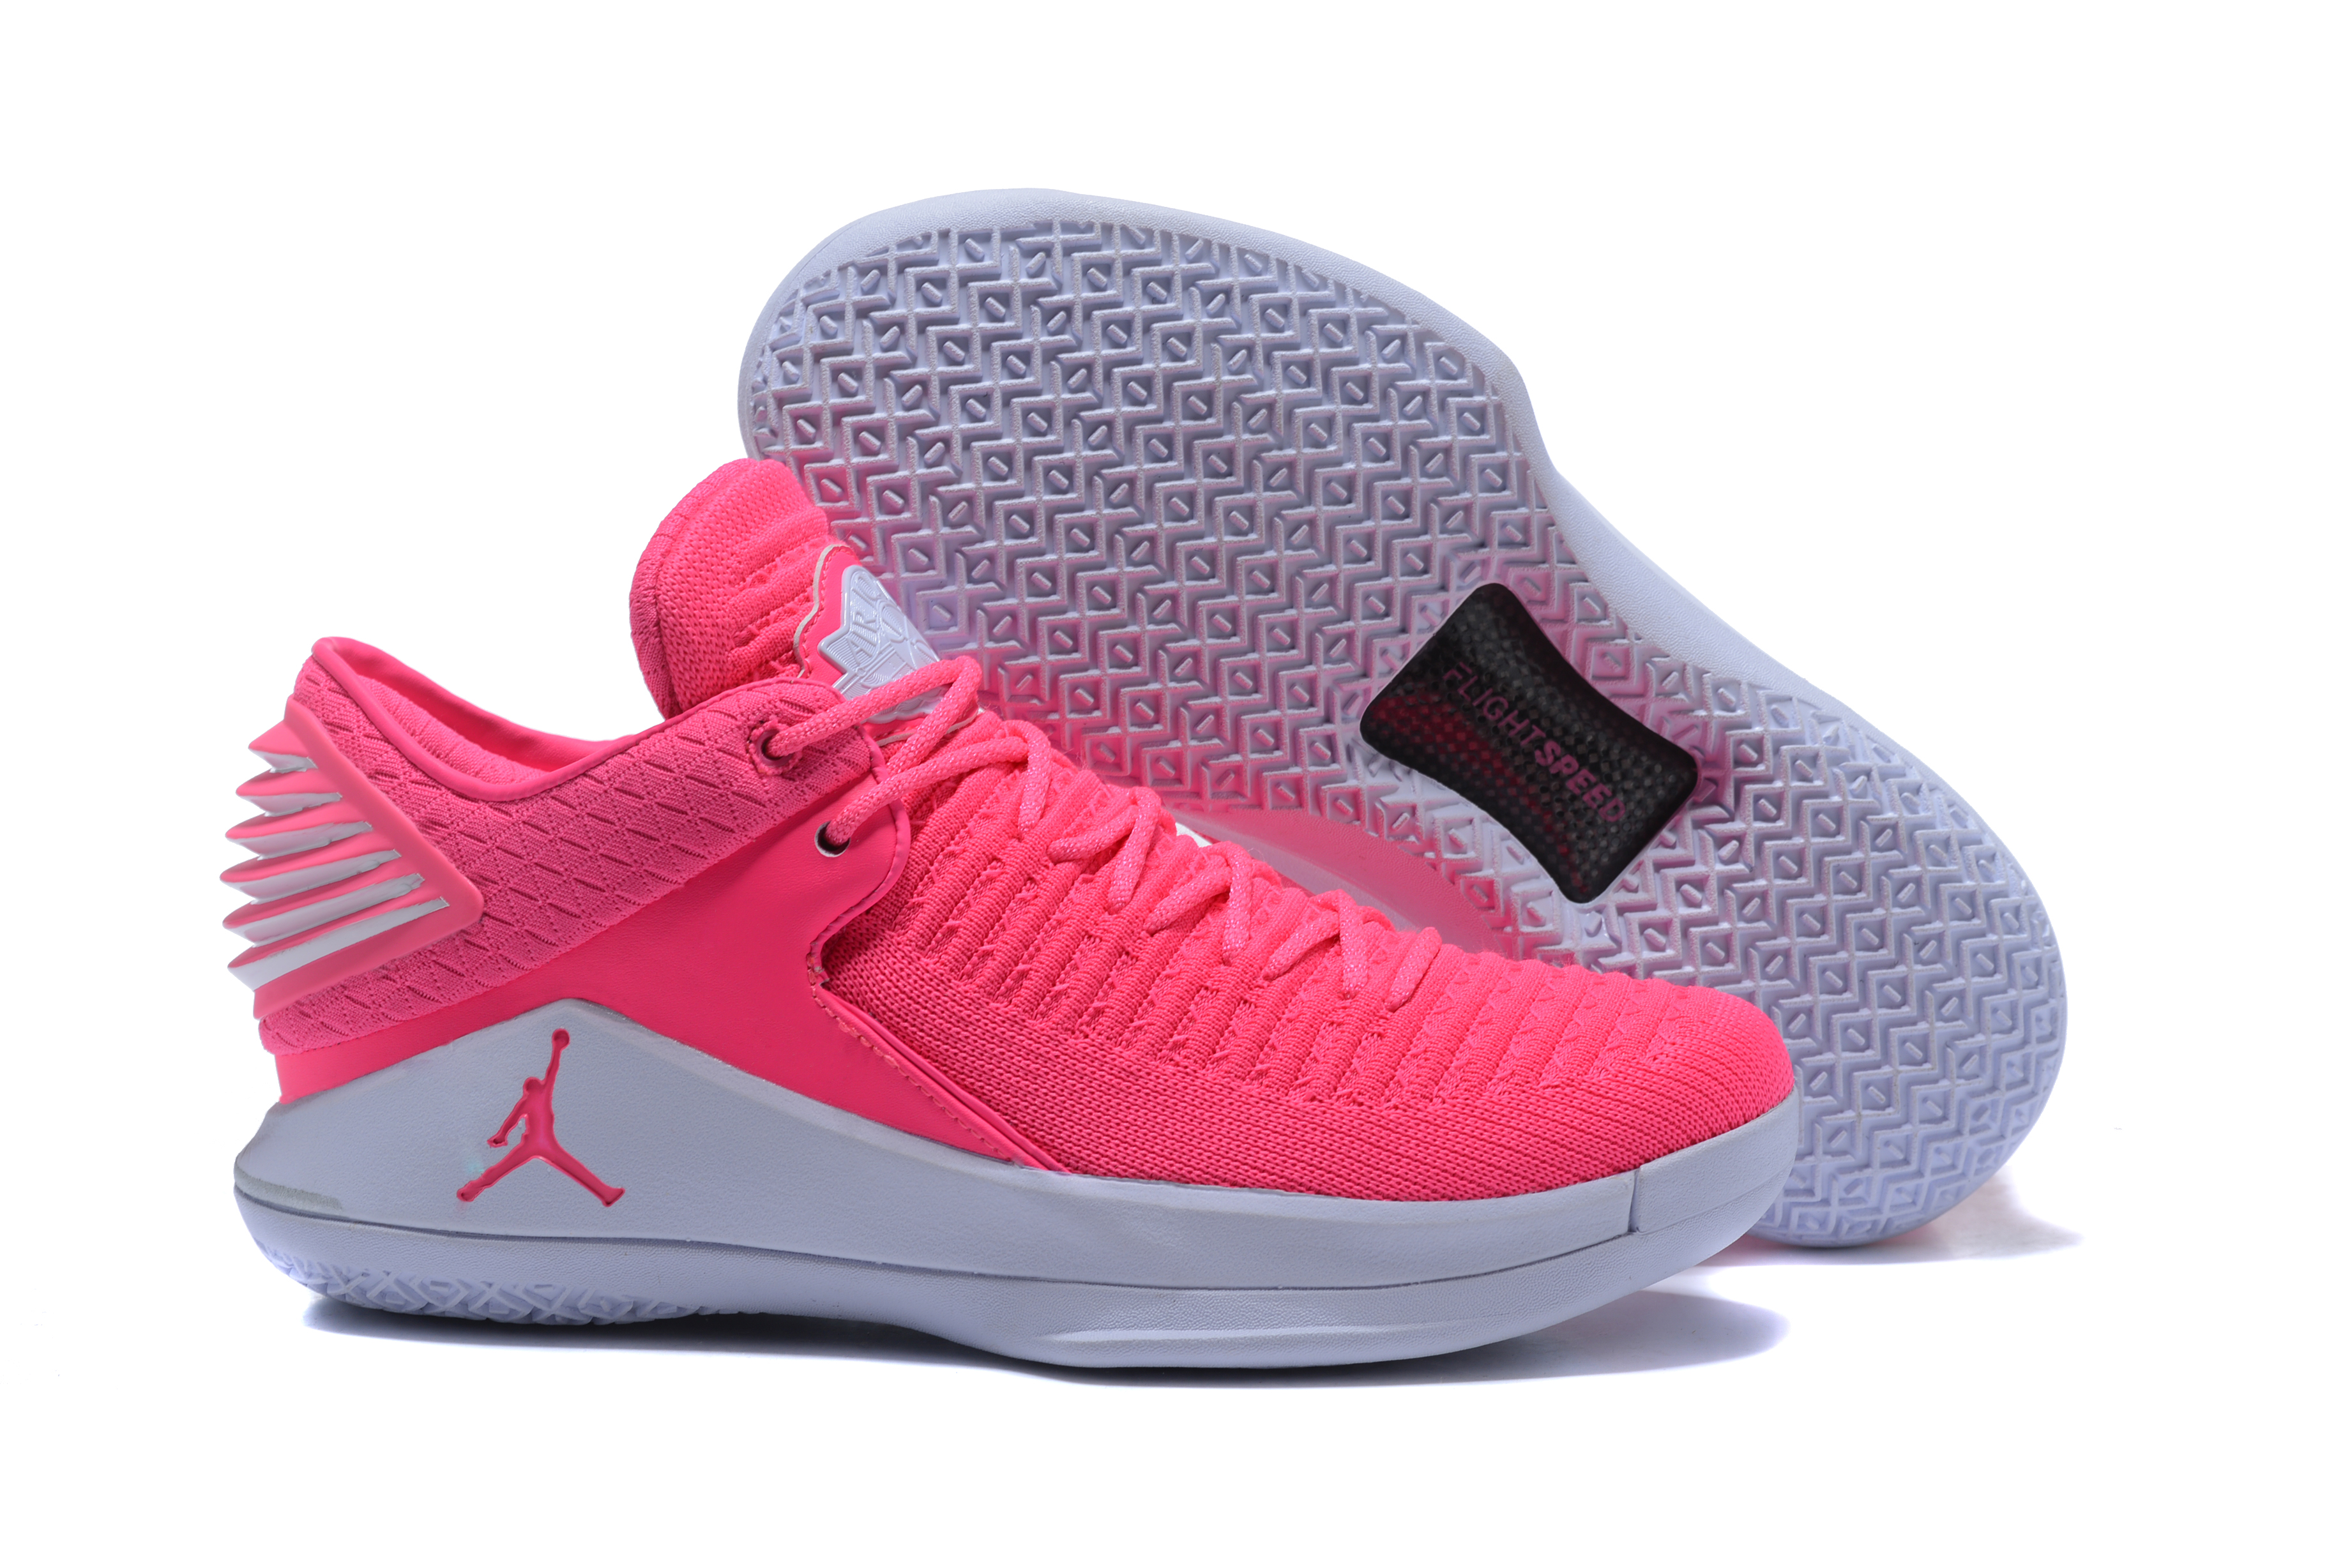 New Air Jordan 32 Low Breast Cancer Pink